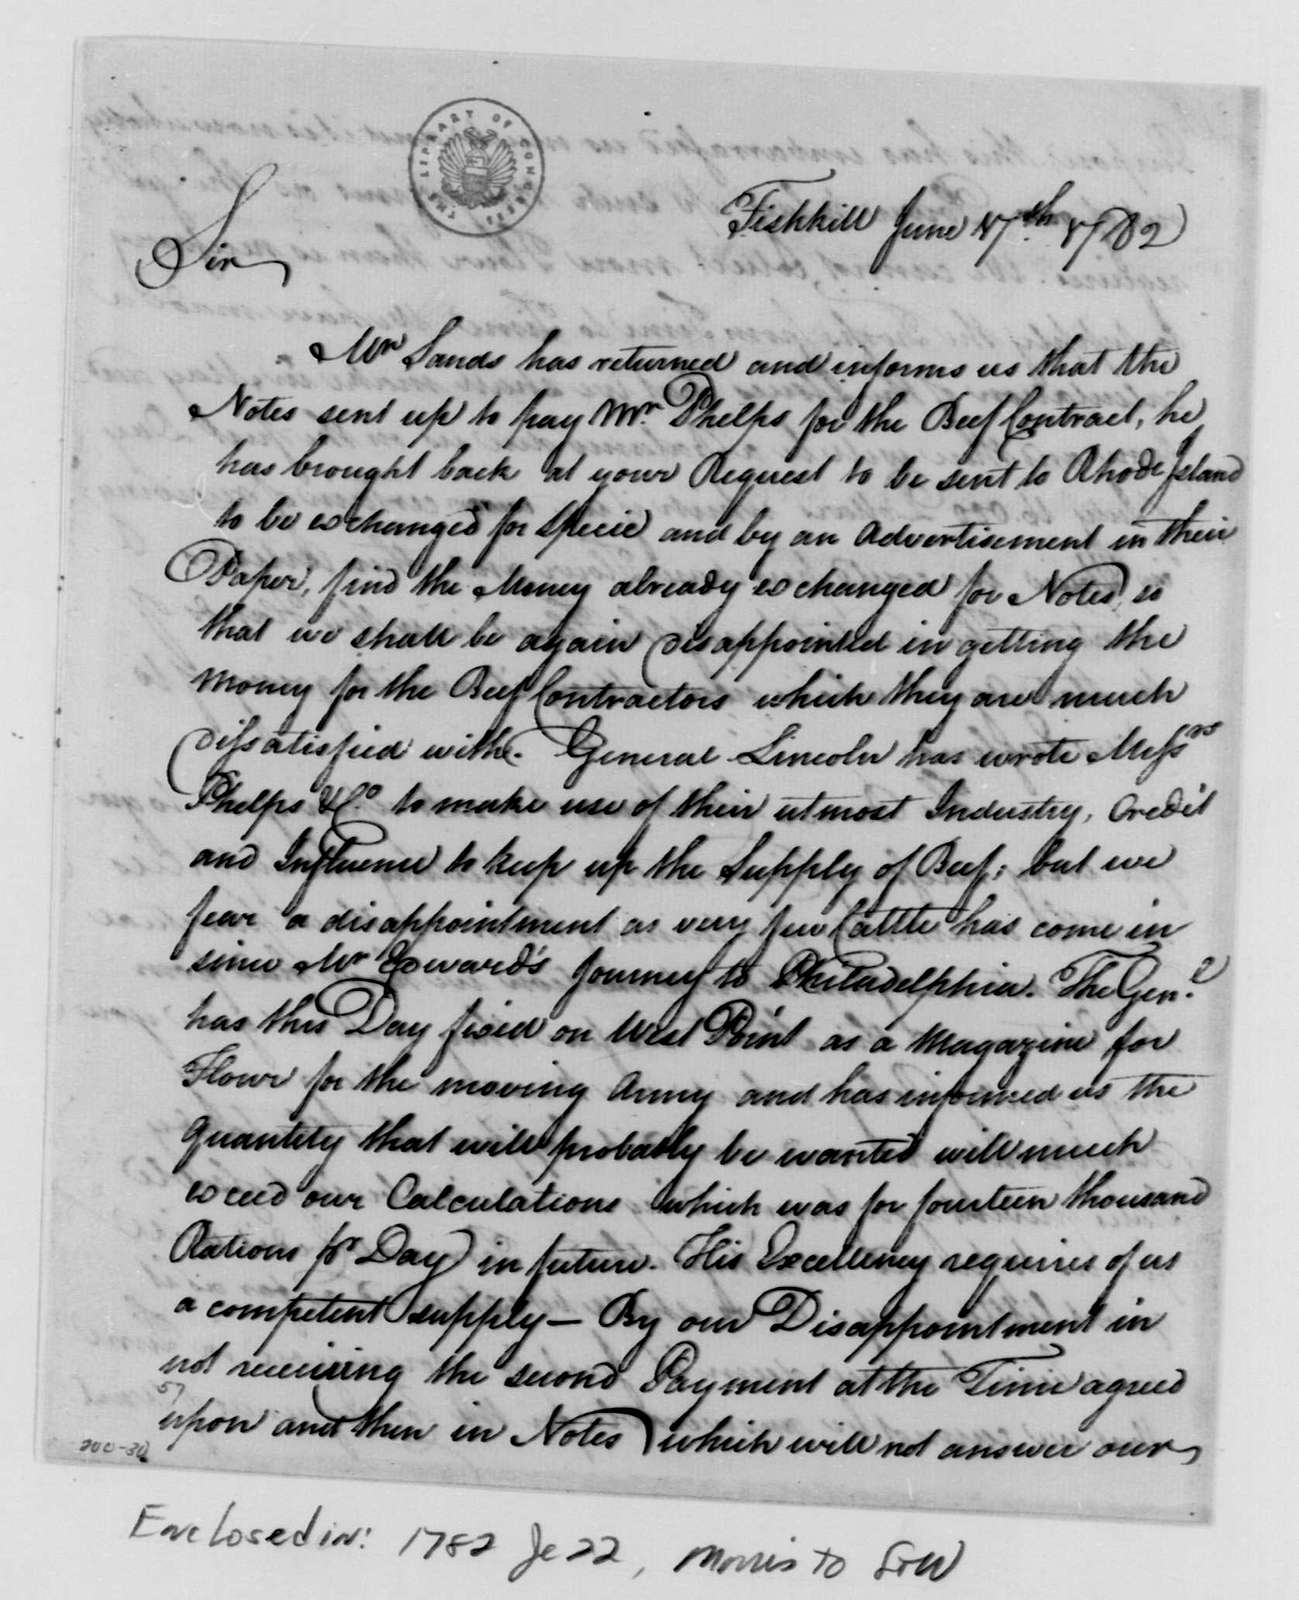 George Washington Papers, Series 4, General Correspondence: Comfort Sands & Company to Robert Morris, June 17, 1782